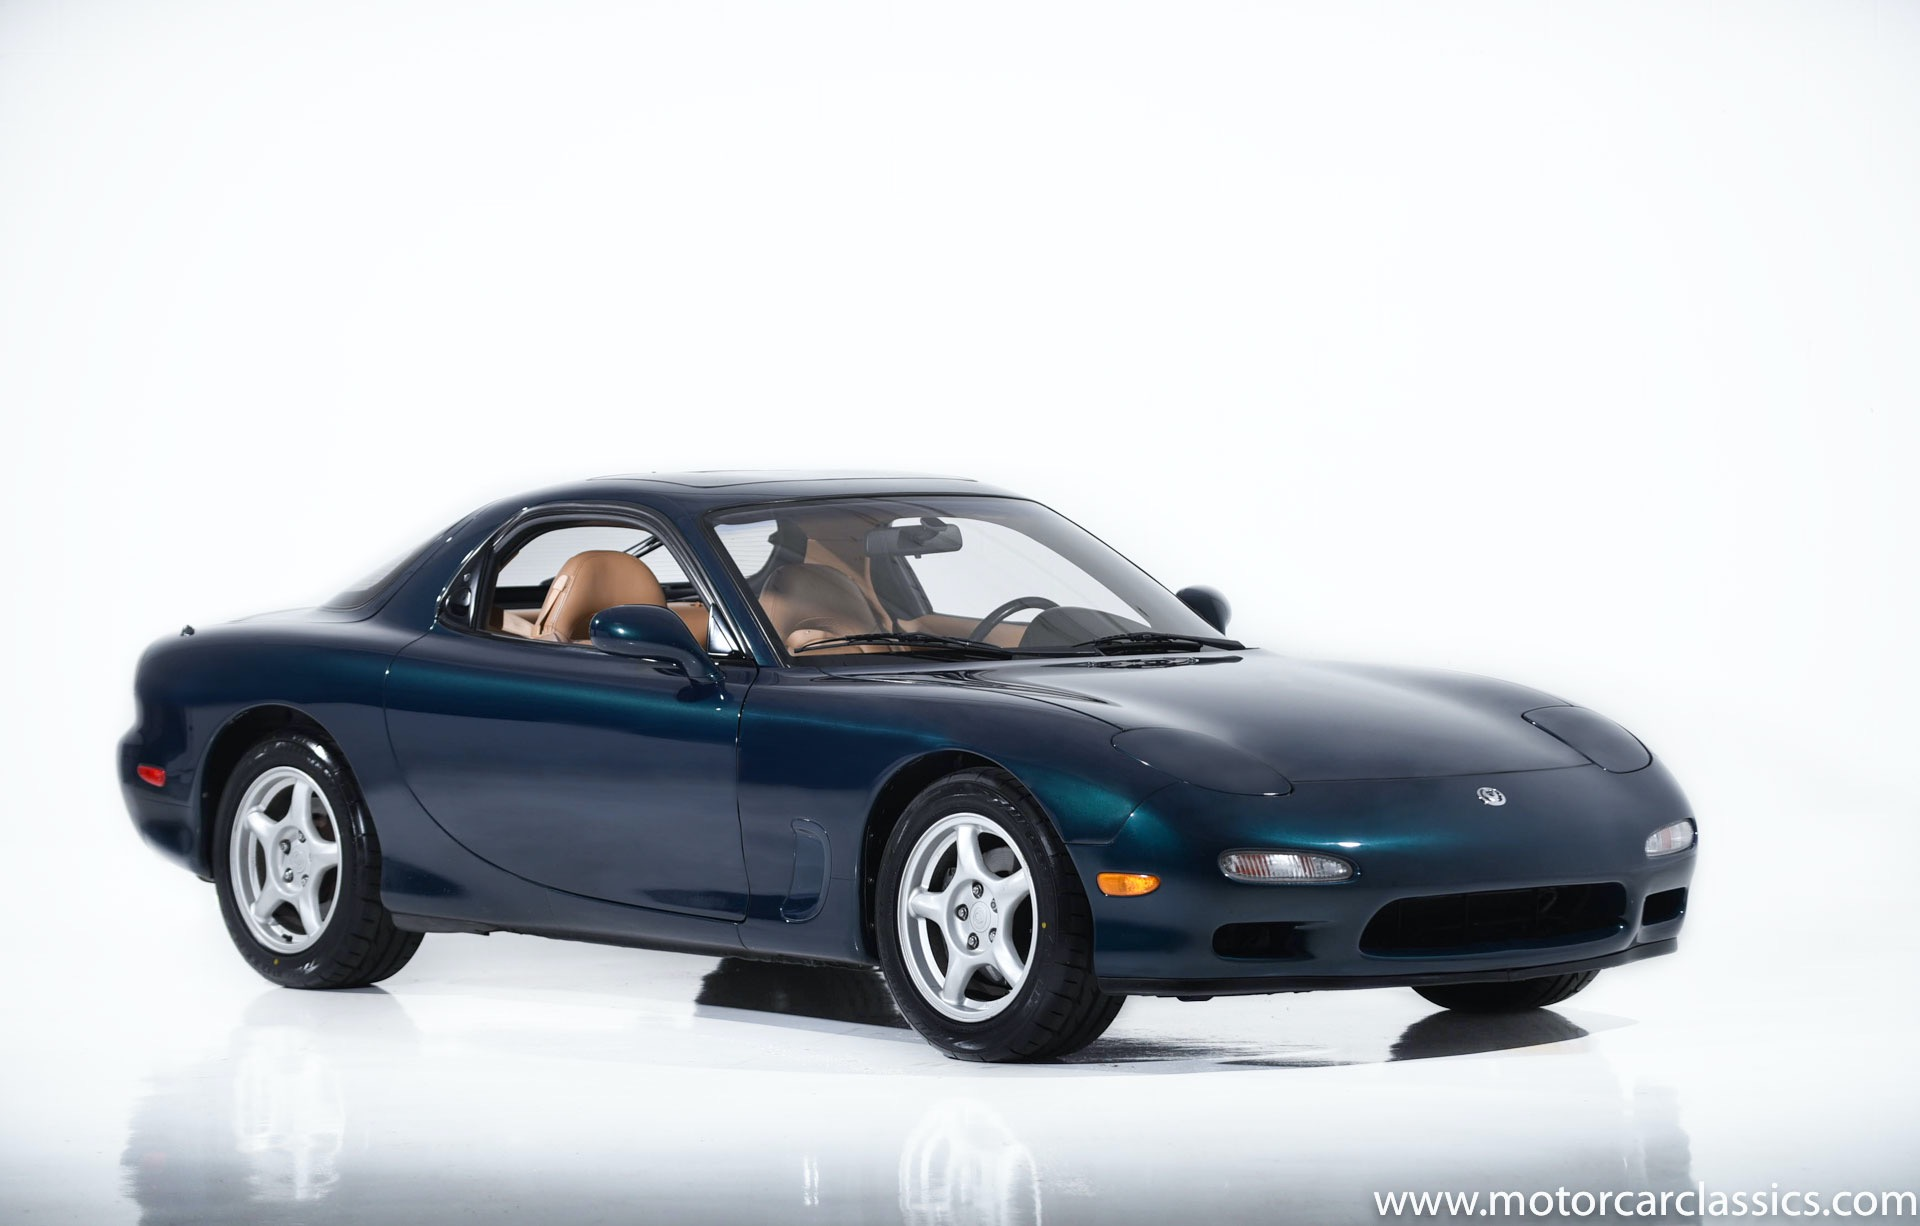 Used 1993 Mazda RX-7 Turbo | Farmingdale, NY